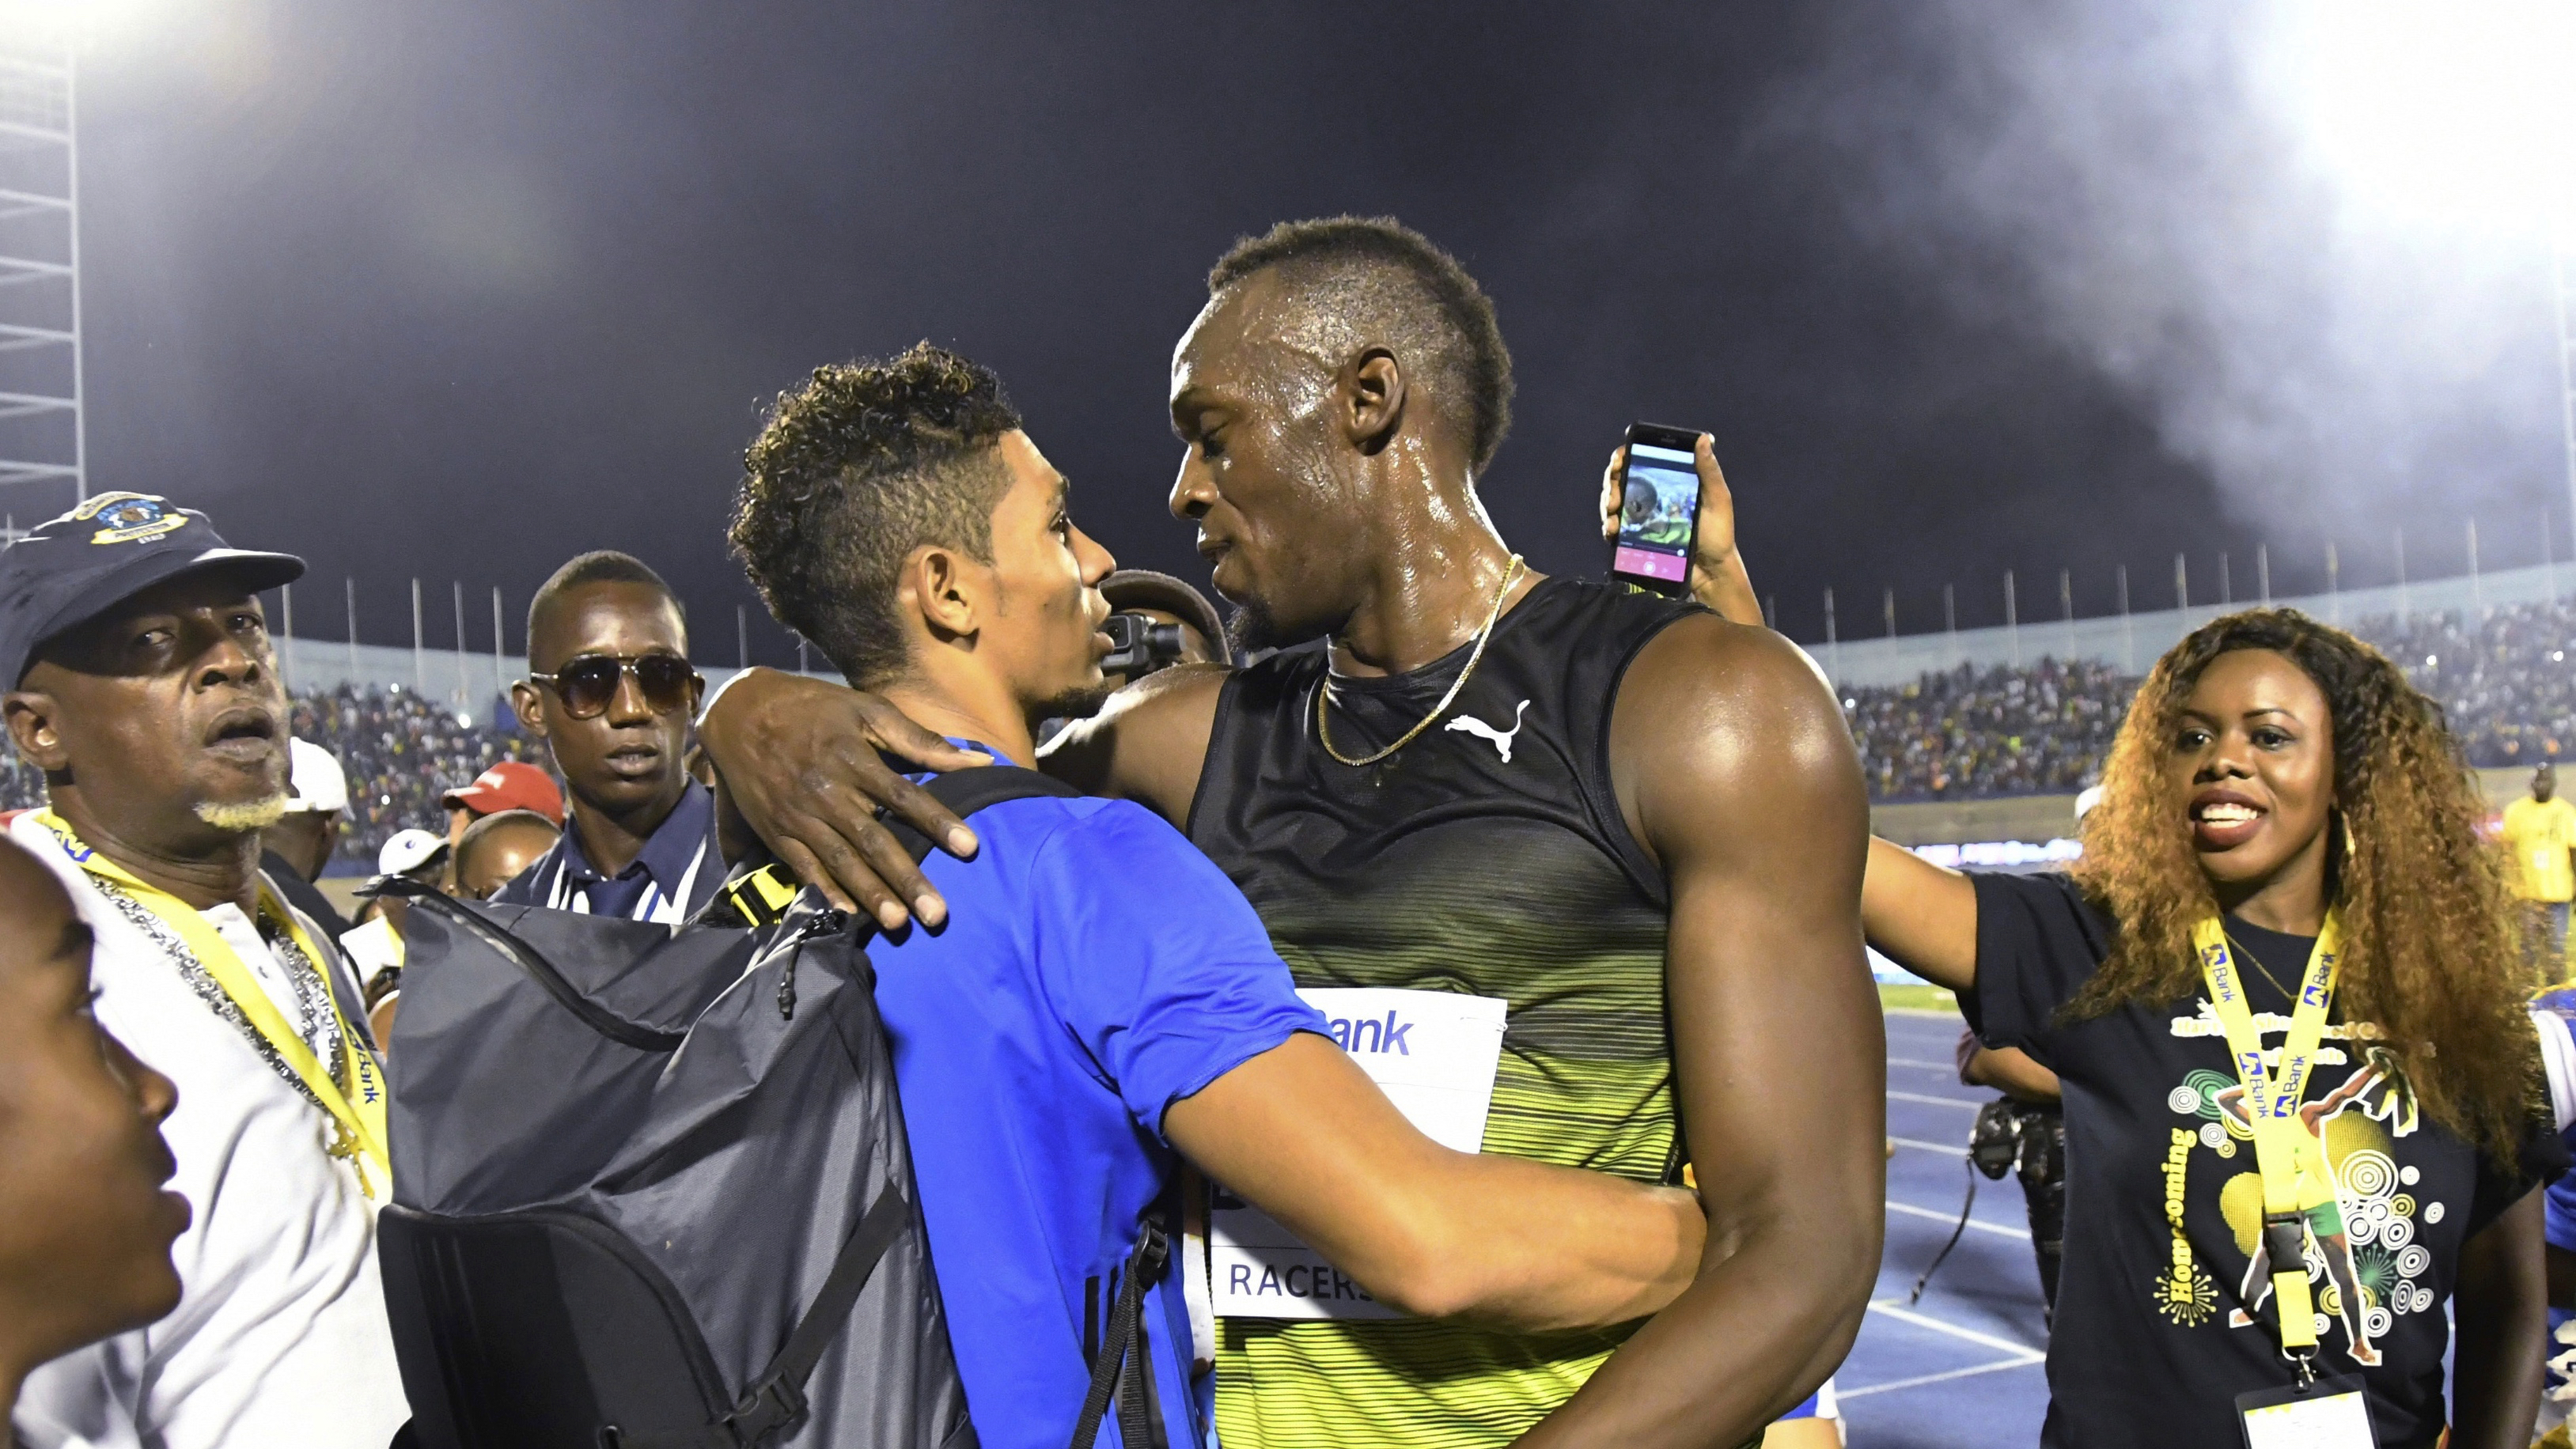 """Jamaica's Usain Bolt, center right, embraces South African sprinter Wayde van Niekerk after winning the """"Salute to a Legend"""" 100 meters during the Racers Grand Prix at the national stadium in Kingston, Jamaica, Saturday, June 10, 2017. Bolt started his final season with his last race on Jamaican soil and plans to retire from track and field after the 2017 London World Championships in August. (AP Photo/Bryan Cummings)"""